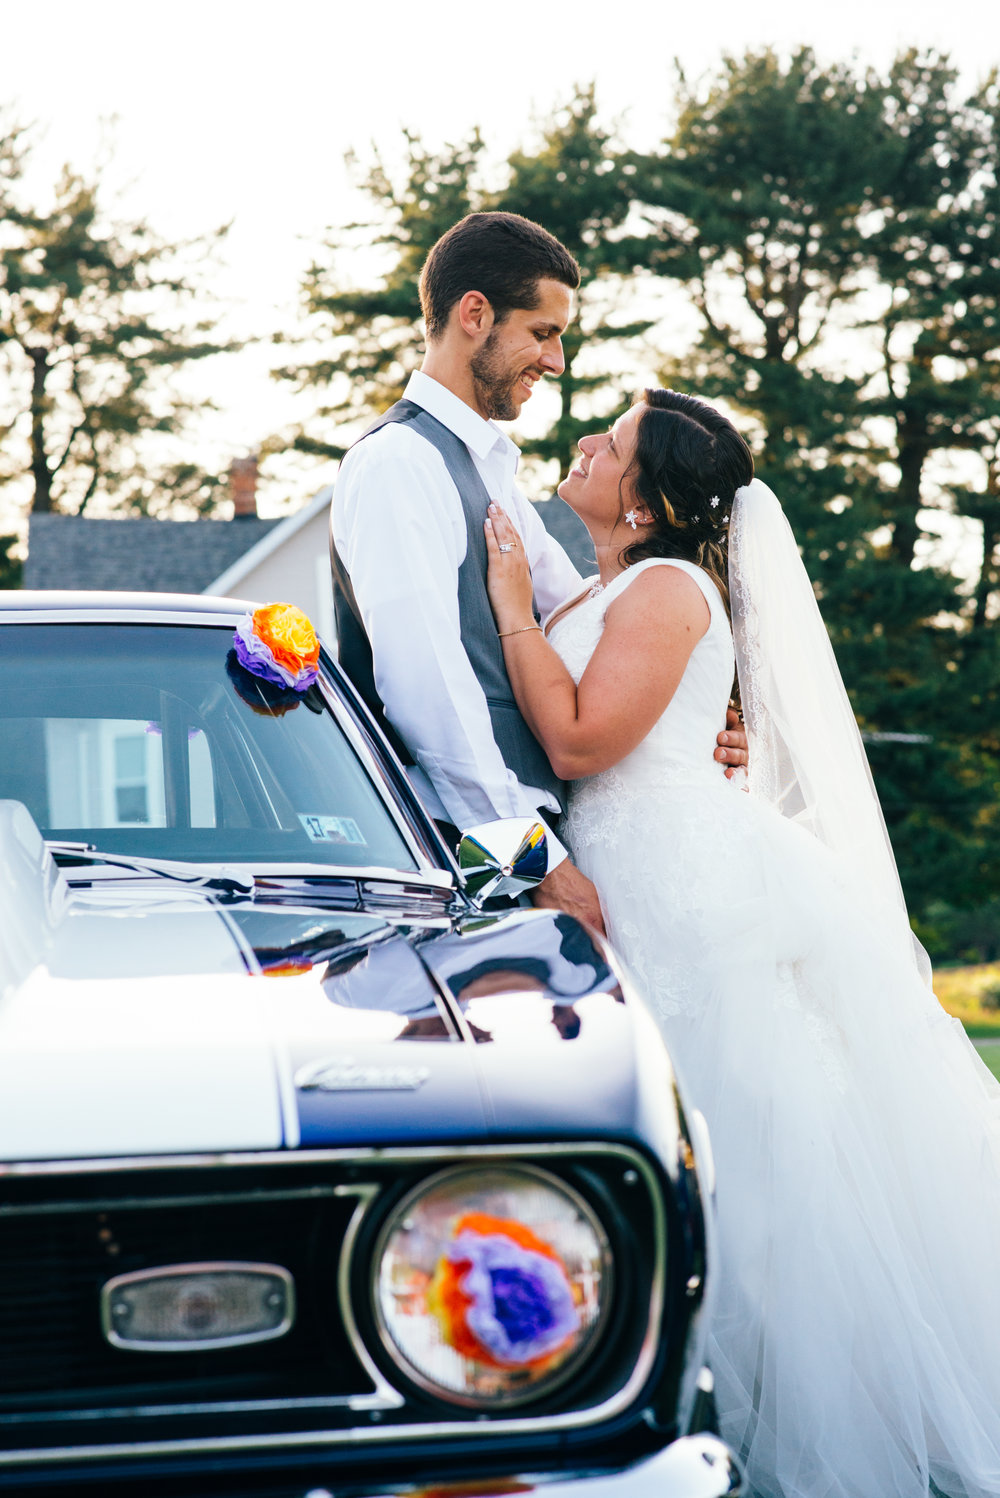 MOST PUBLISHED WEDDING - Dan + Danielle | Car Themed Wedding at Farm on the Ridge